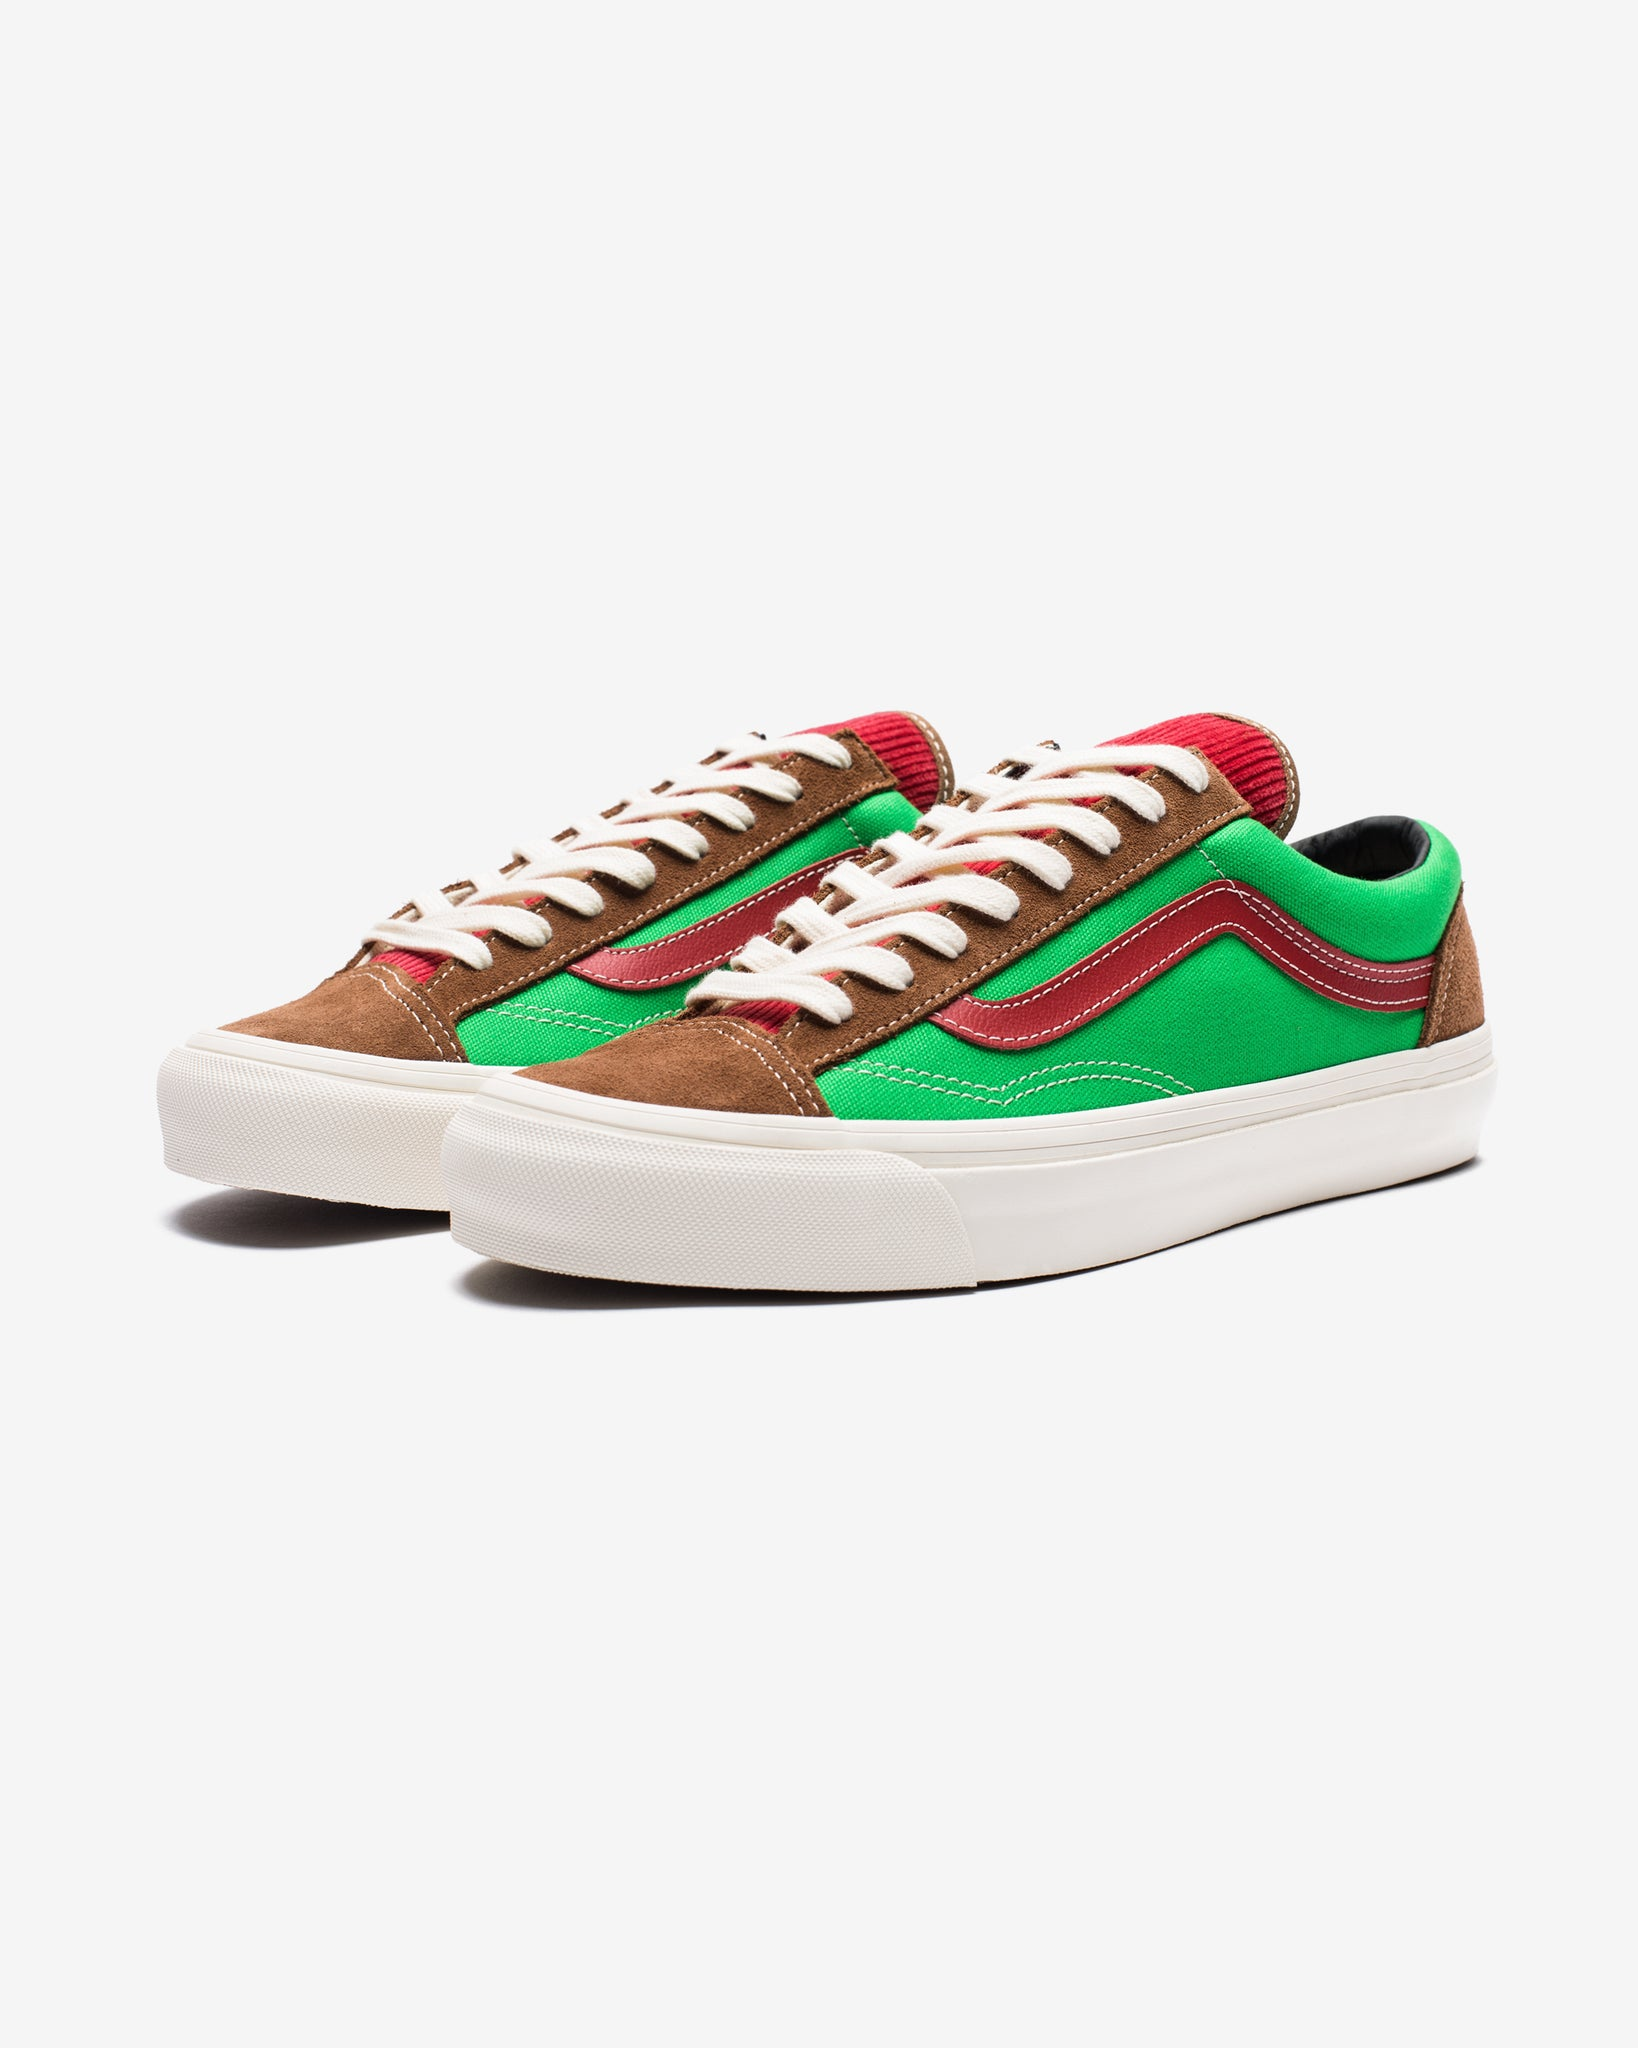 OG STYLE 36 LX (CORDUROY CANVAS) - RUBBER/CLASSICGREEN